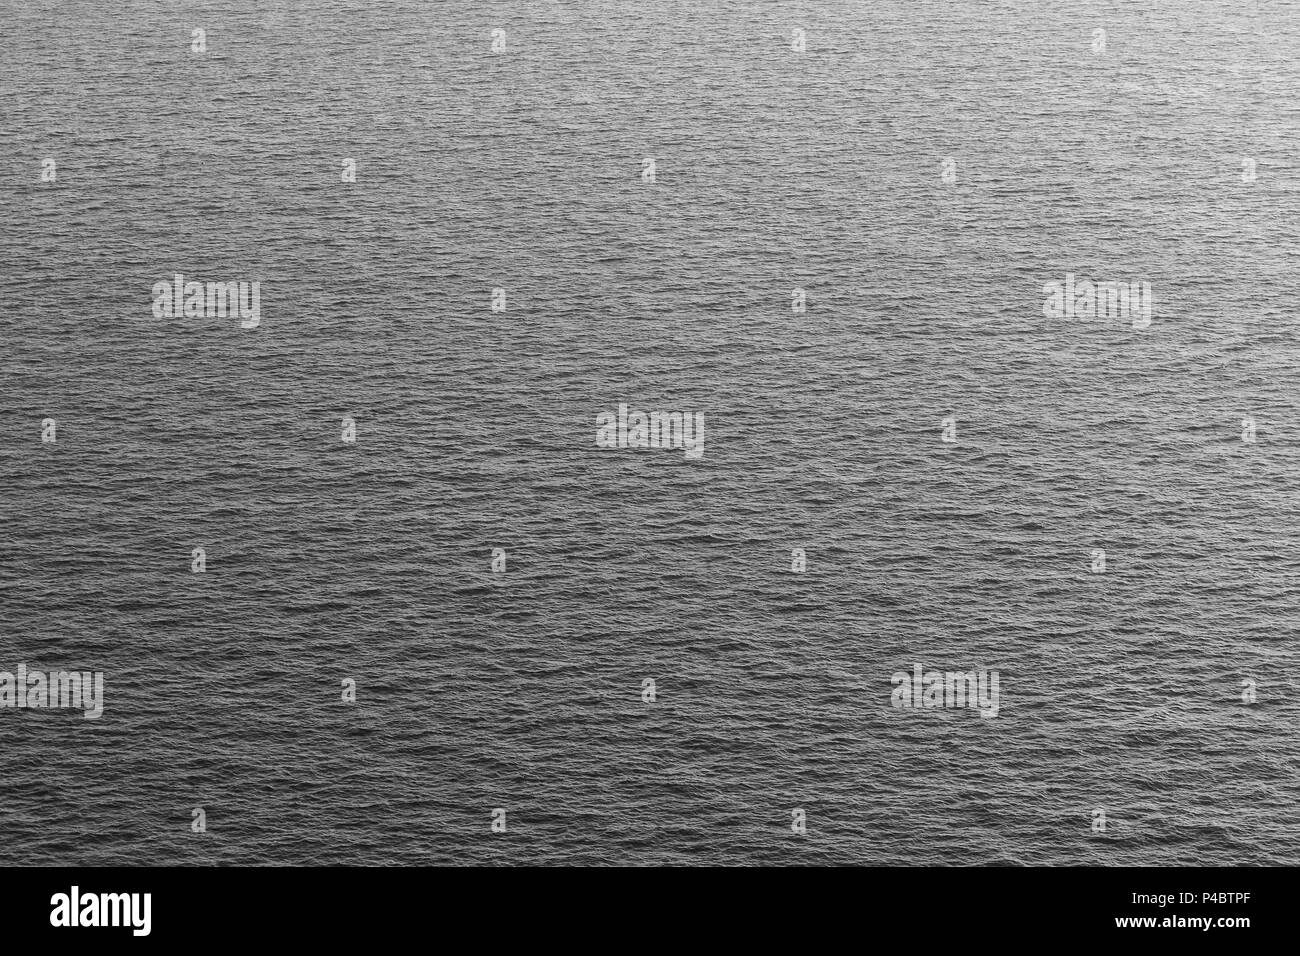 Water in the sea background, black and white color. Stock Photo